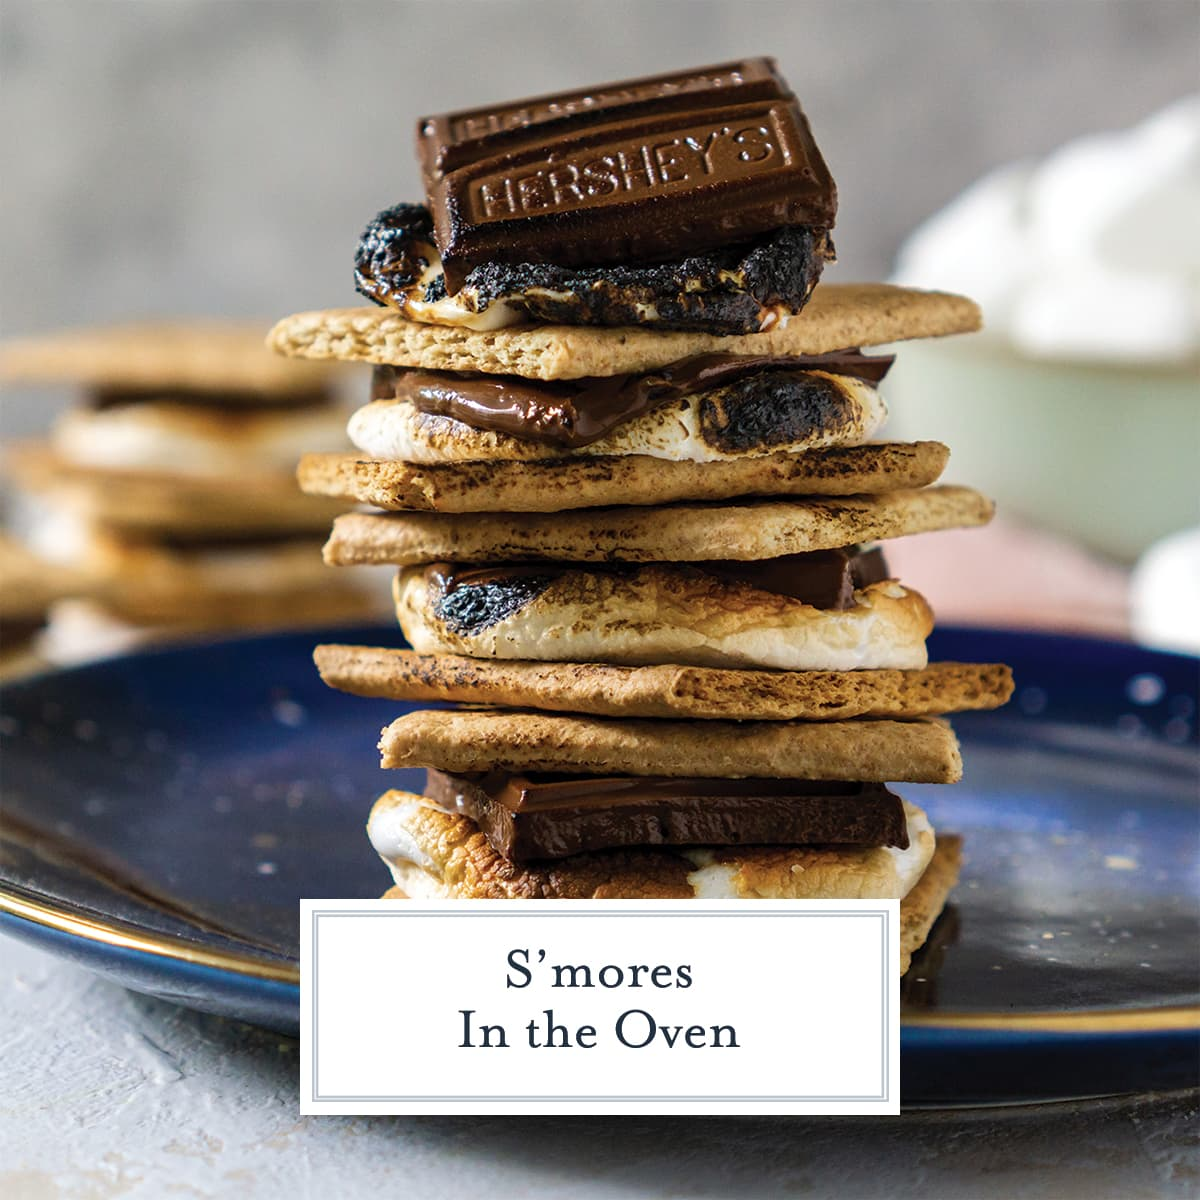 How to make smores in the oven at home with no fire. Pair with caramel sauce or use one of our 20+ variations!